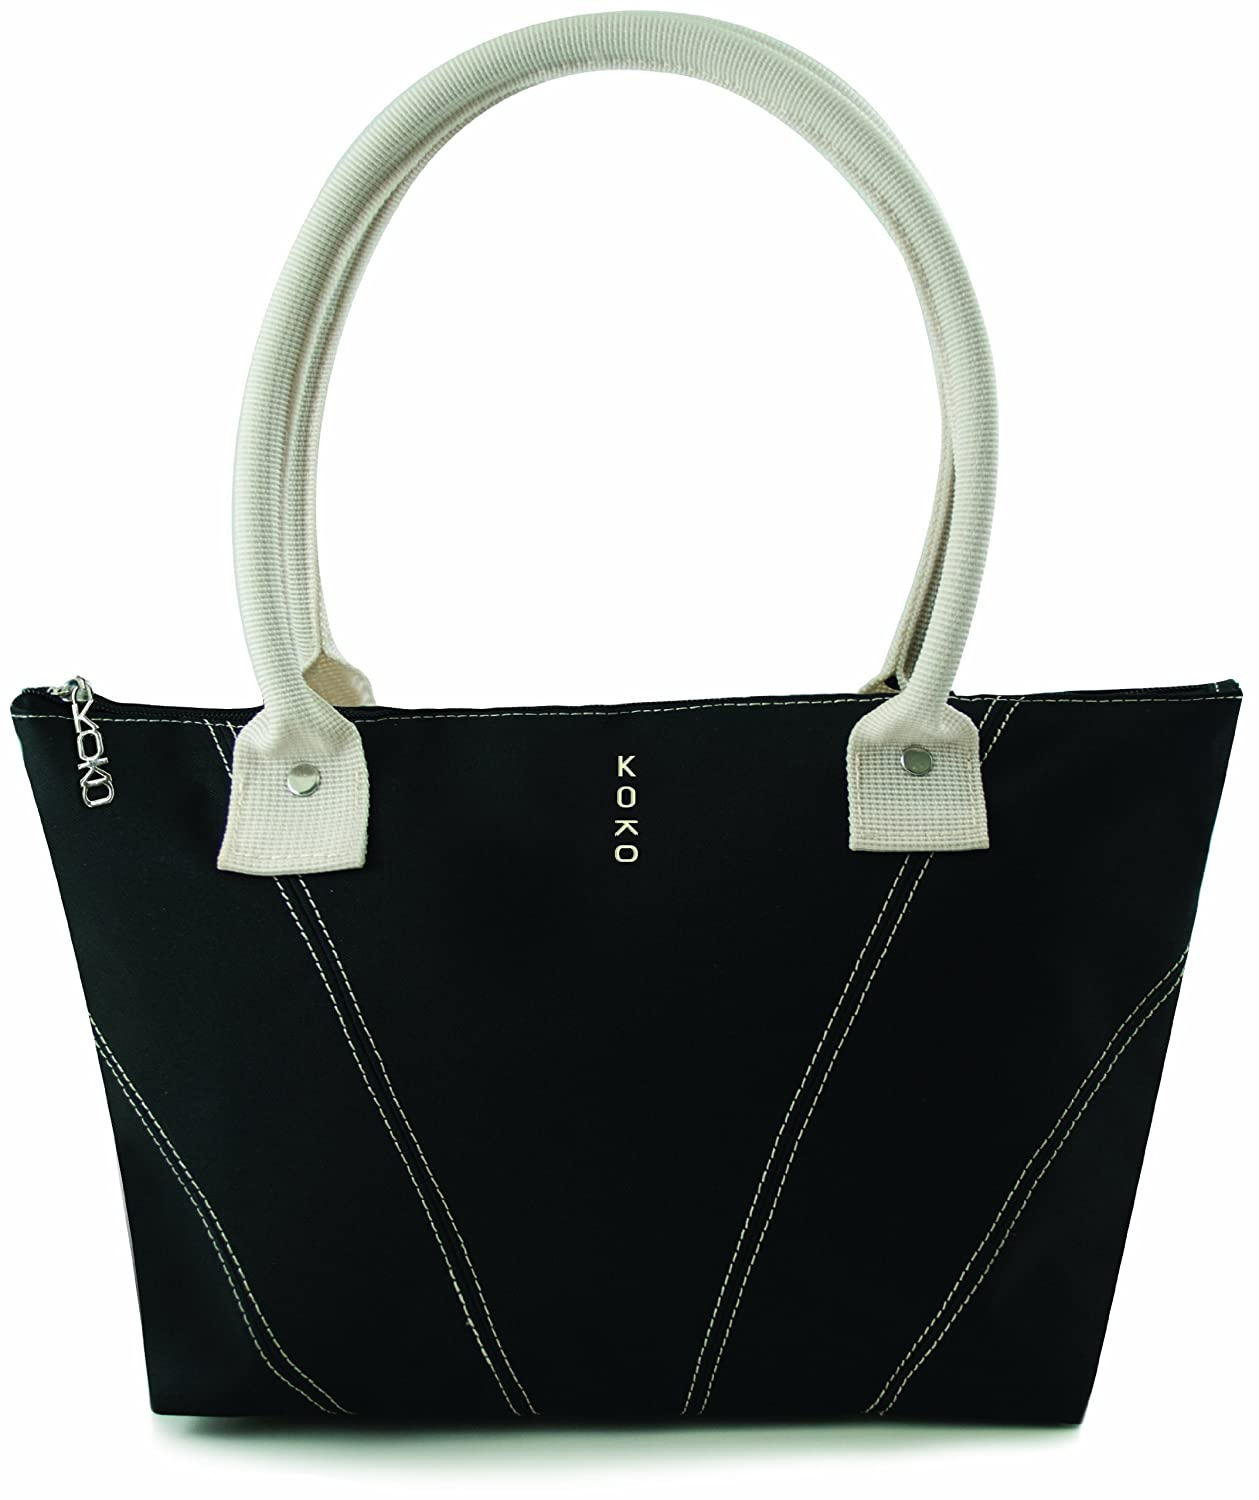 Koko Michelle Lunch Bag, Black